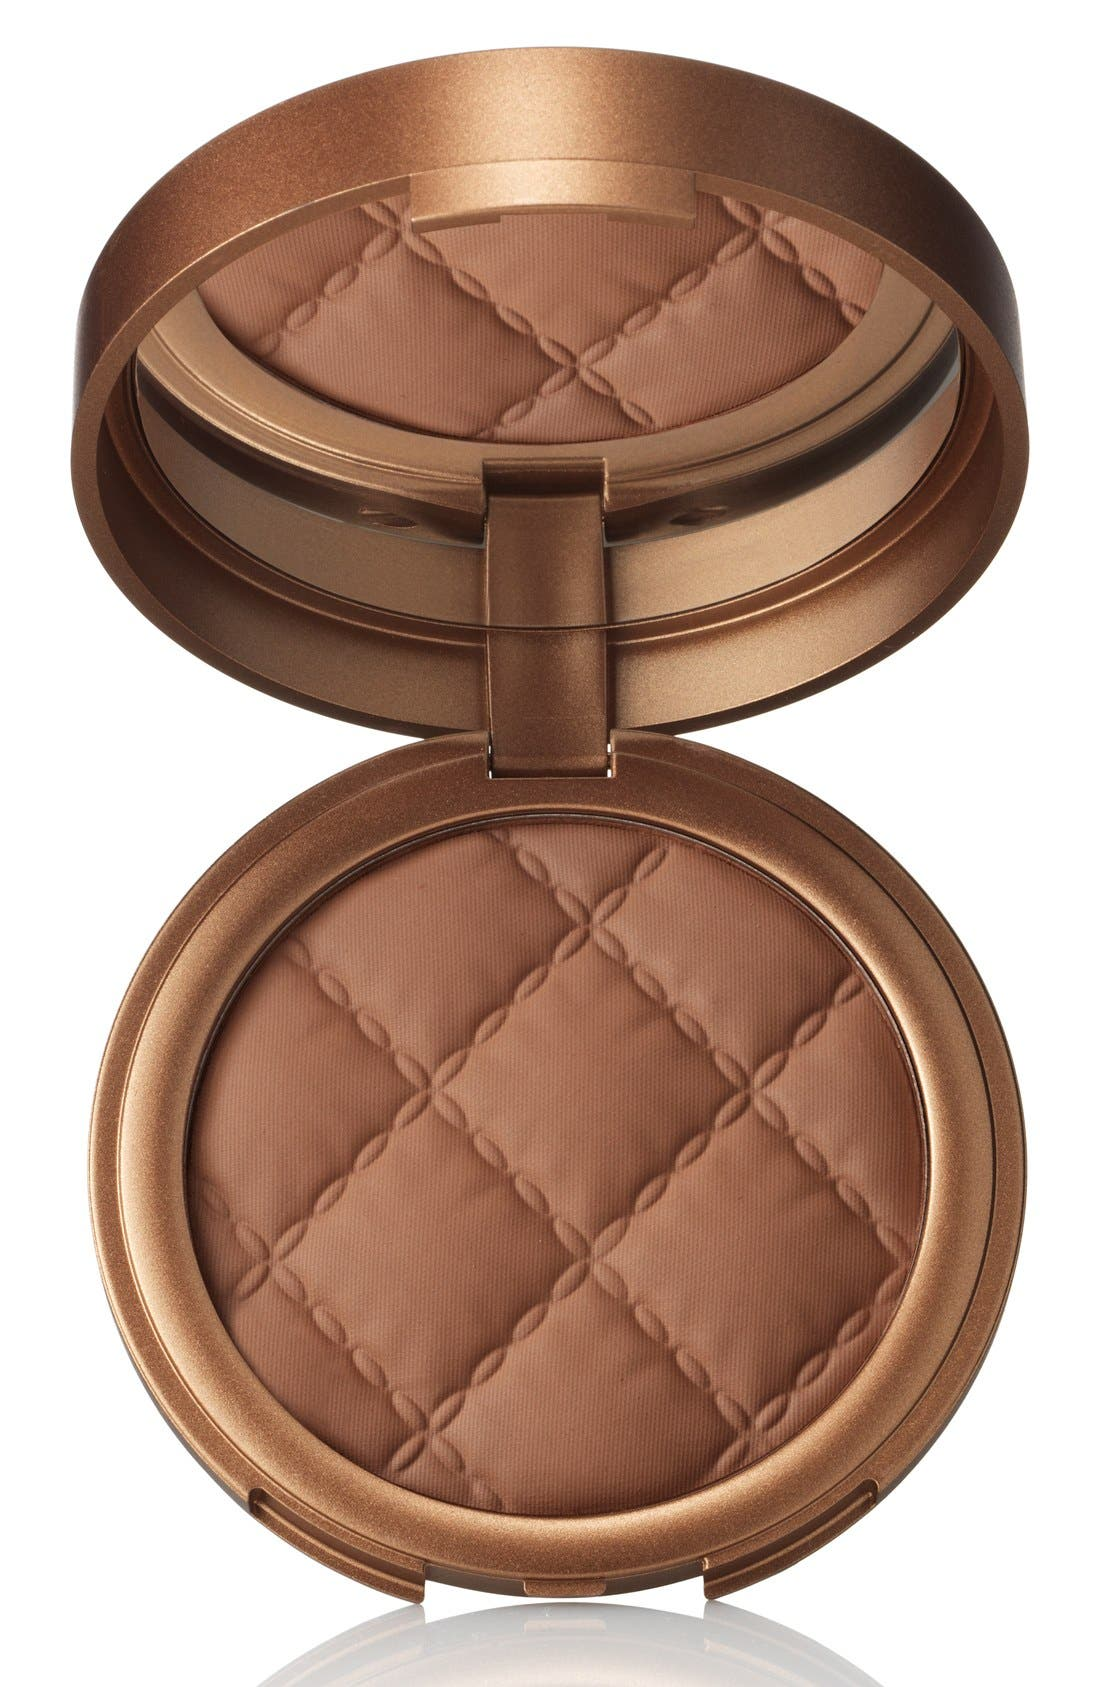 Laura Geller Beauty 'Beach Matte' Baked Hydrating Bronzer